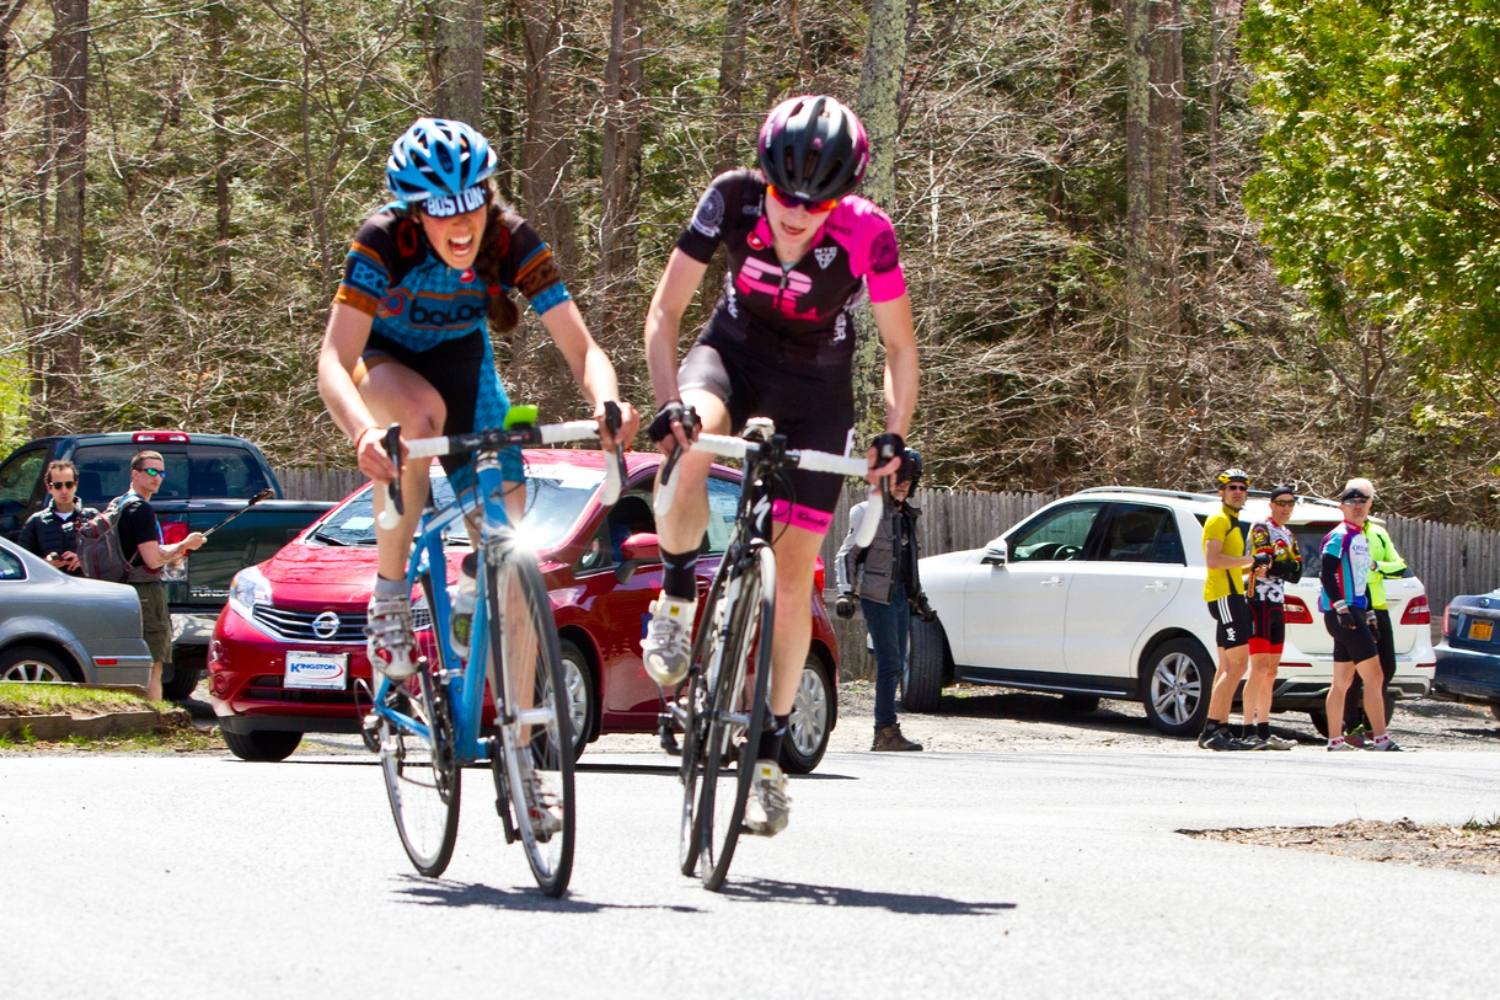 Julie doesn't let up as she takes 3rd in the QOM over the top of the main climboverLucie Vagnerova of the CRCA Rockstar team